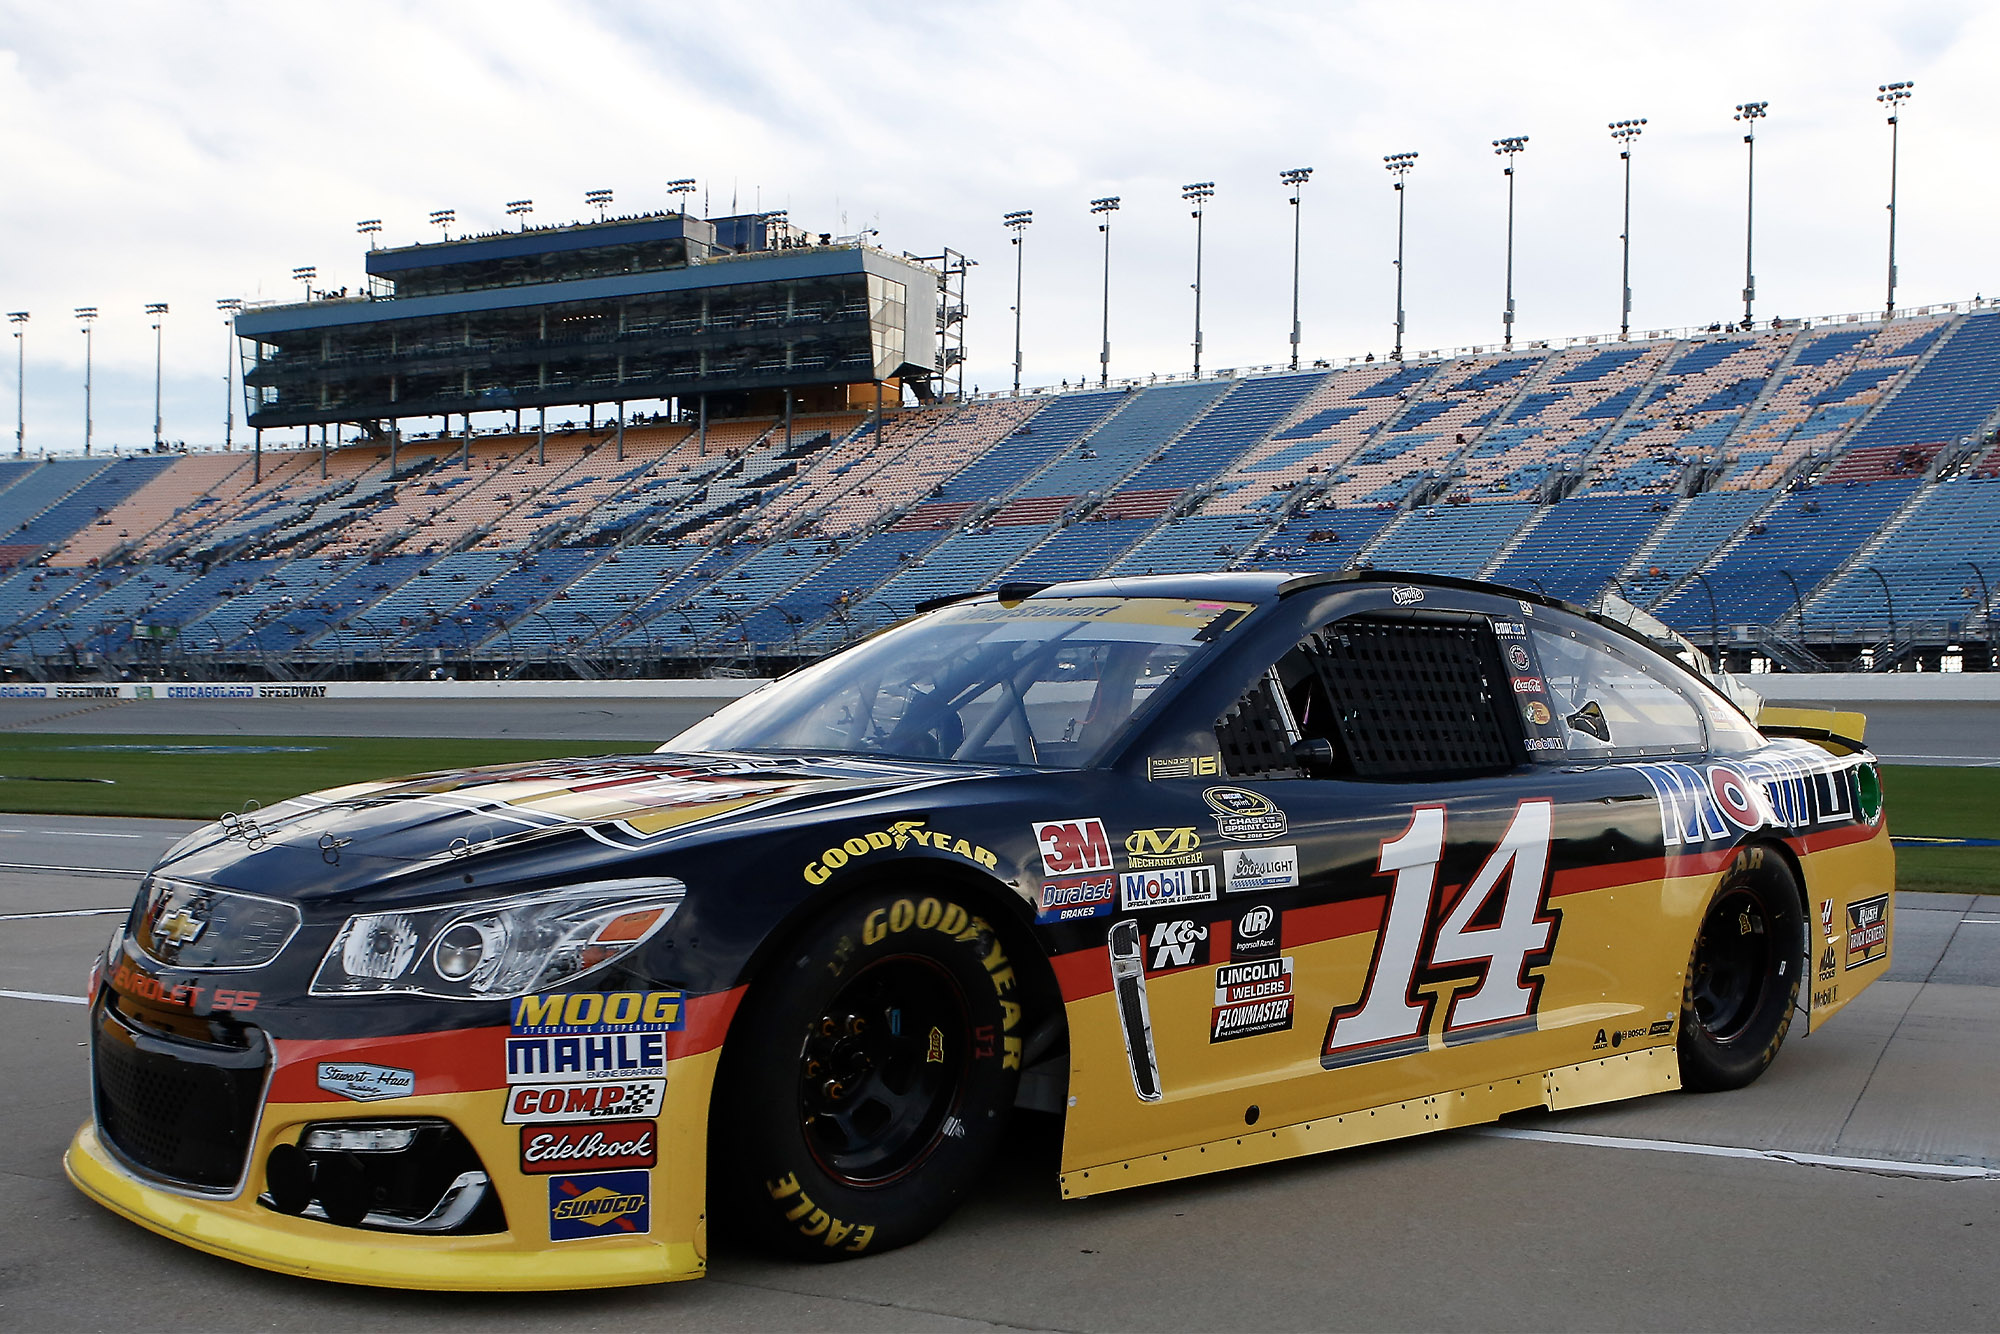 Tony Stewart's No14 Chevrolet